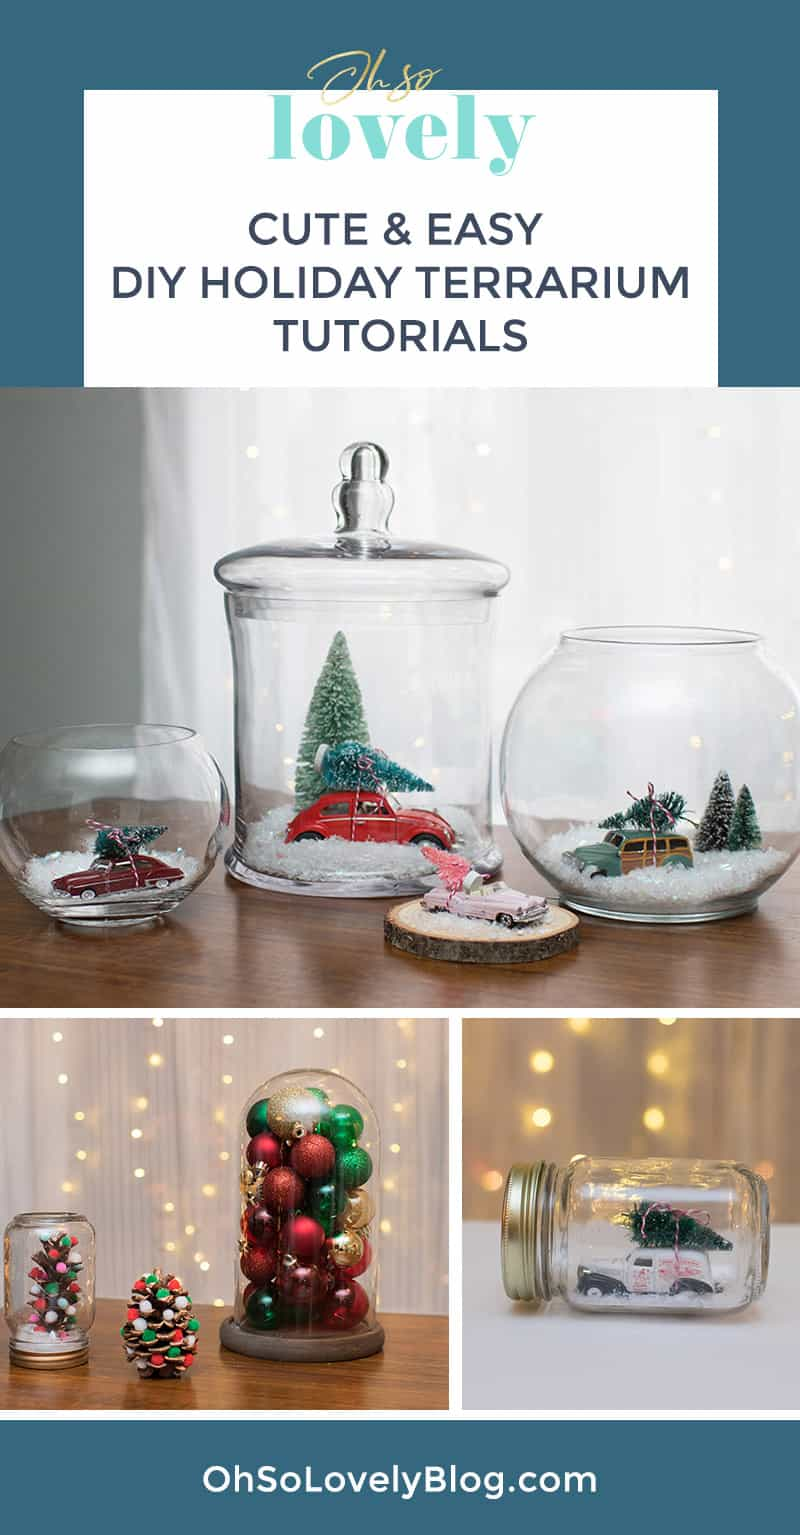 Diy Holiday Terrarium Totorials From Oh So Lovely Blog